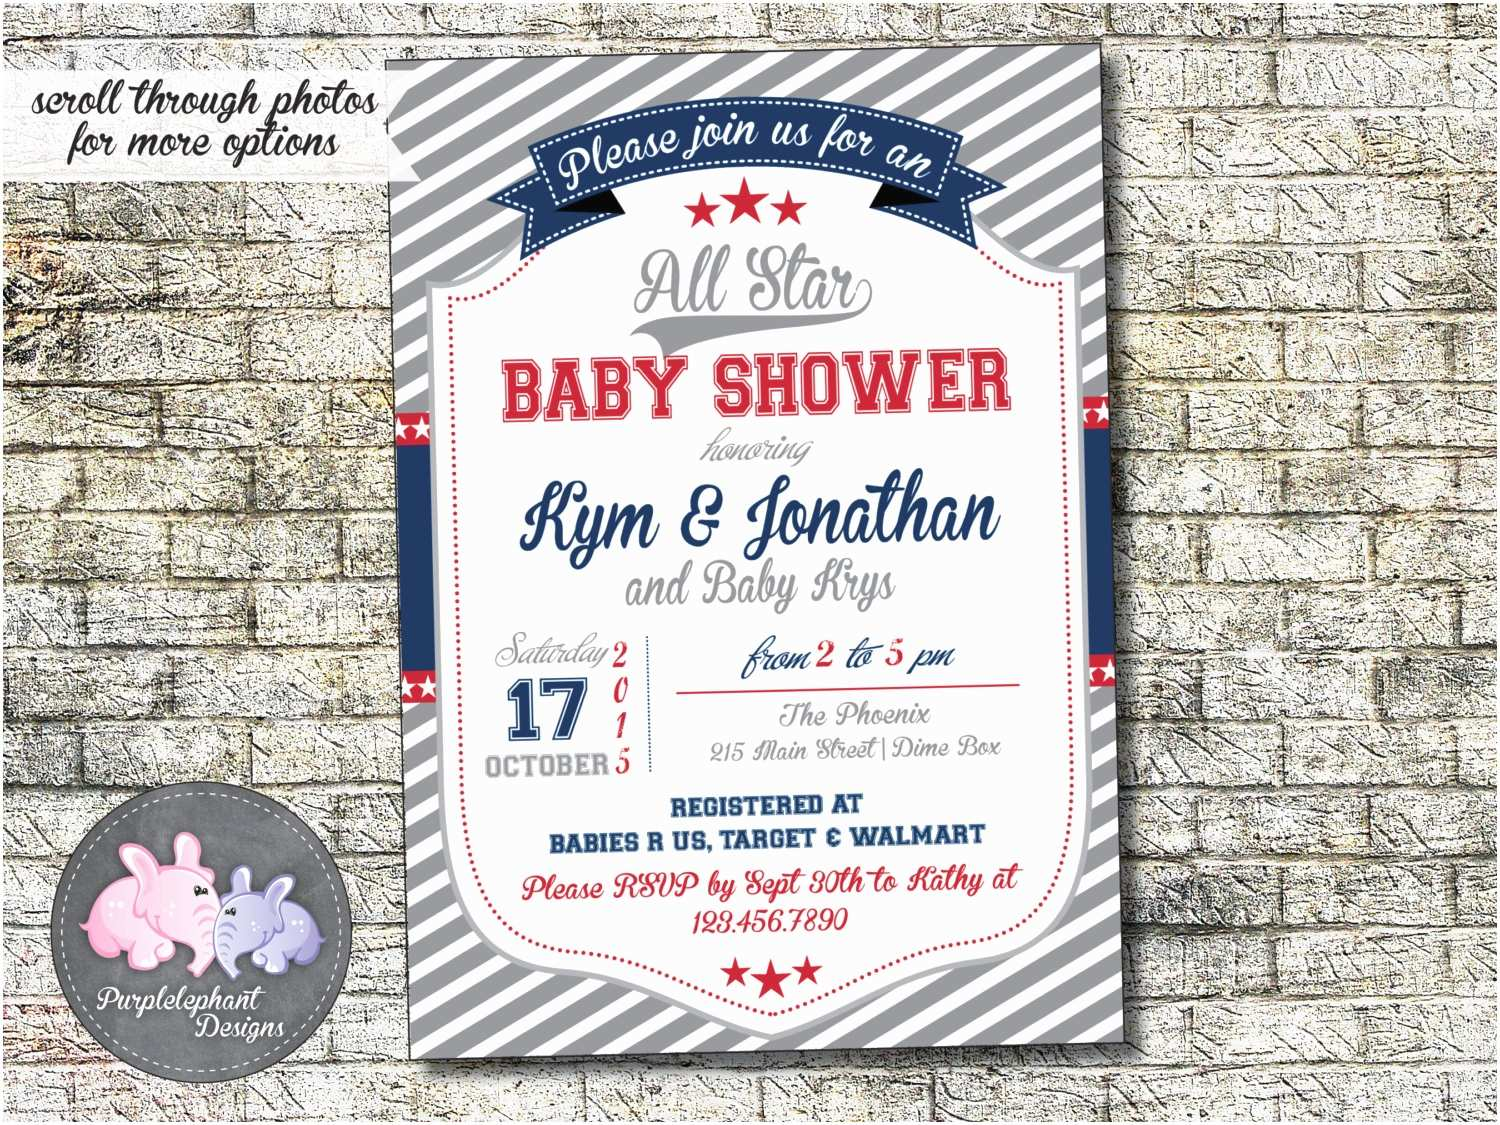 All Star Baby Shower Invitations All Star Baby Shower Invitation Boy Baby Shower Invite Red